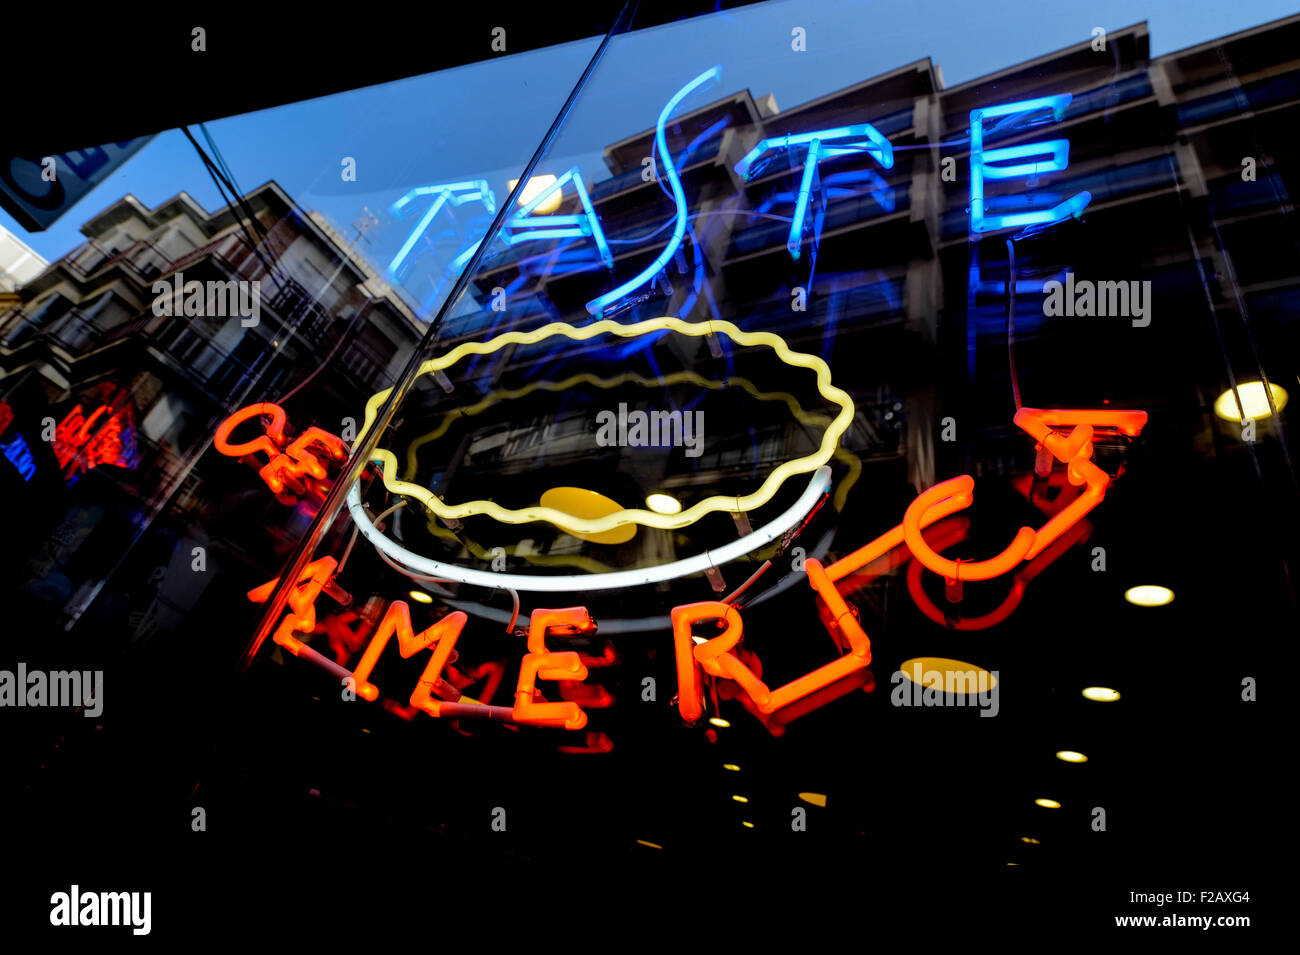 the shop Taste of America-la tienda taste of America - Stock Image